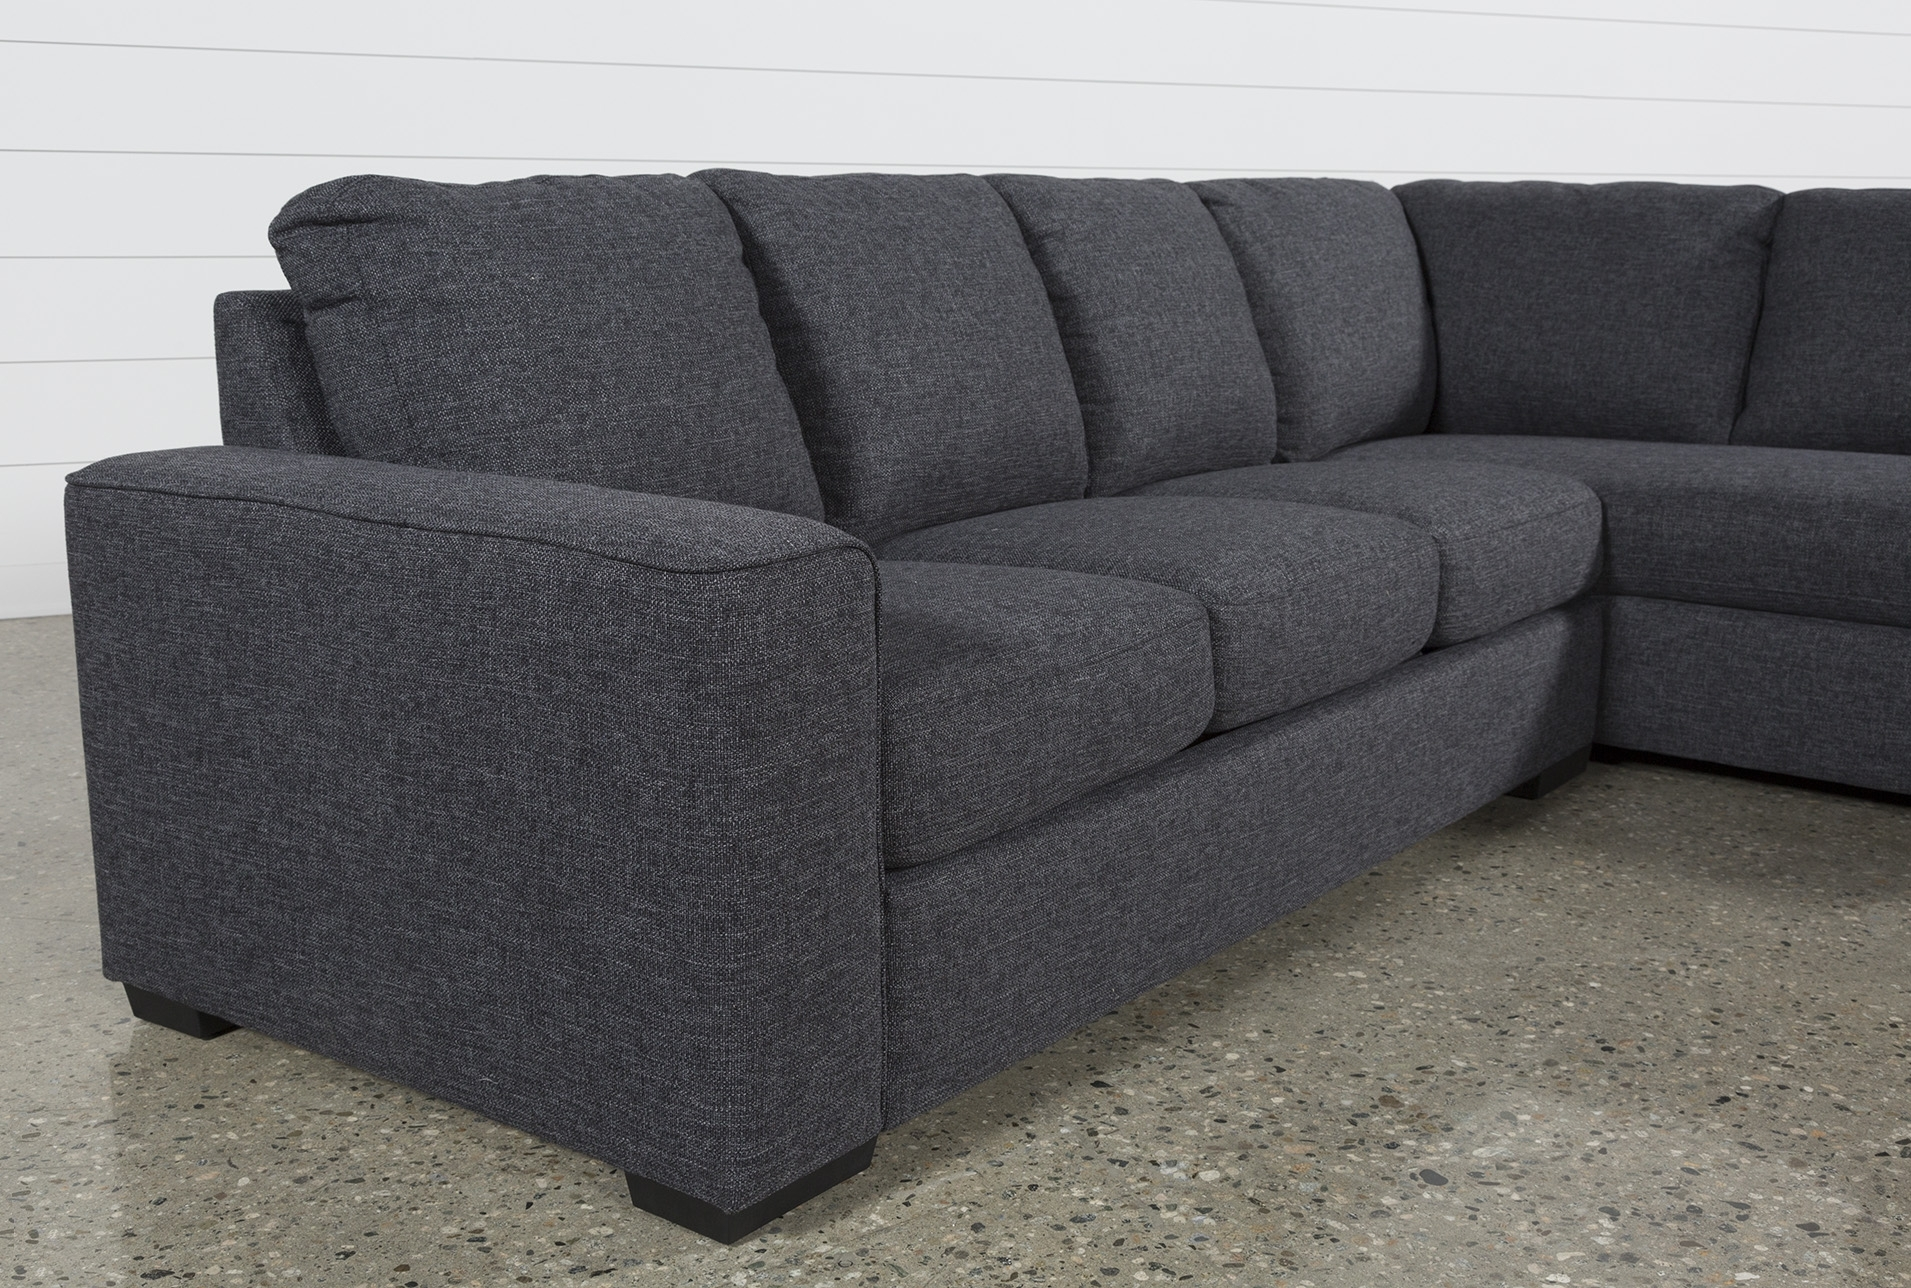 Lucy Dark Grey 2 Piece Sectional W/raf Chaise | Pinterest | Dark With Lucy Dark Grey 2 Piece Sleeper Sectionals With Raf Chaise (Image 12 of 25)